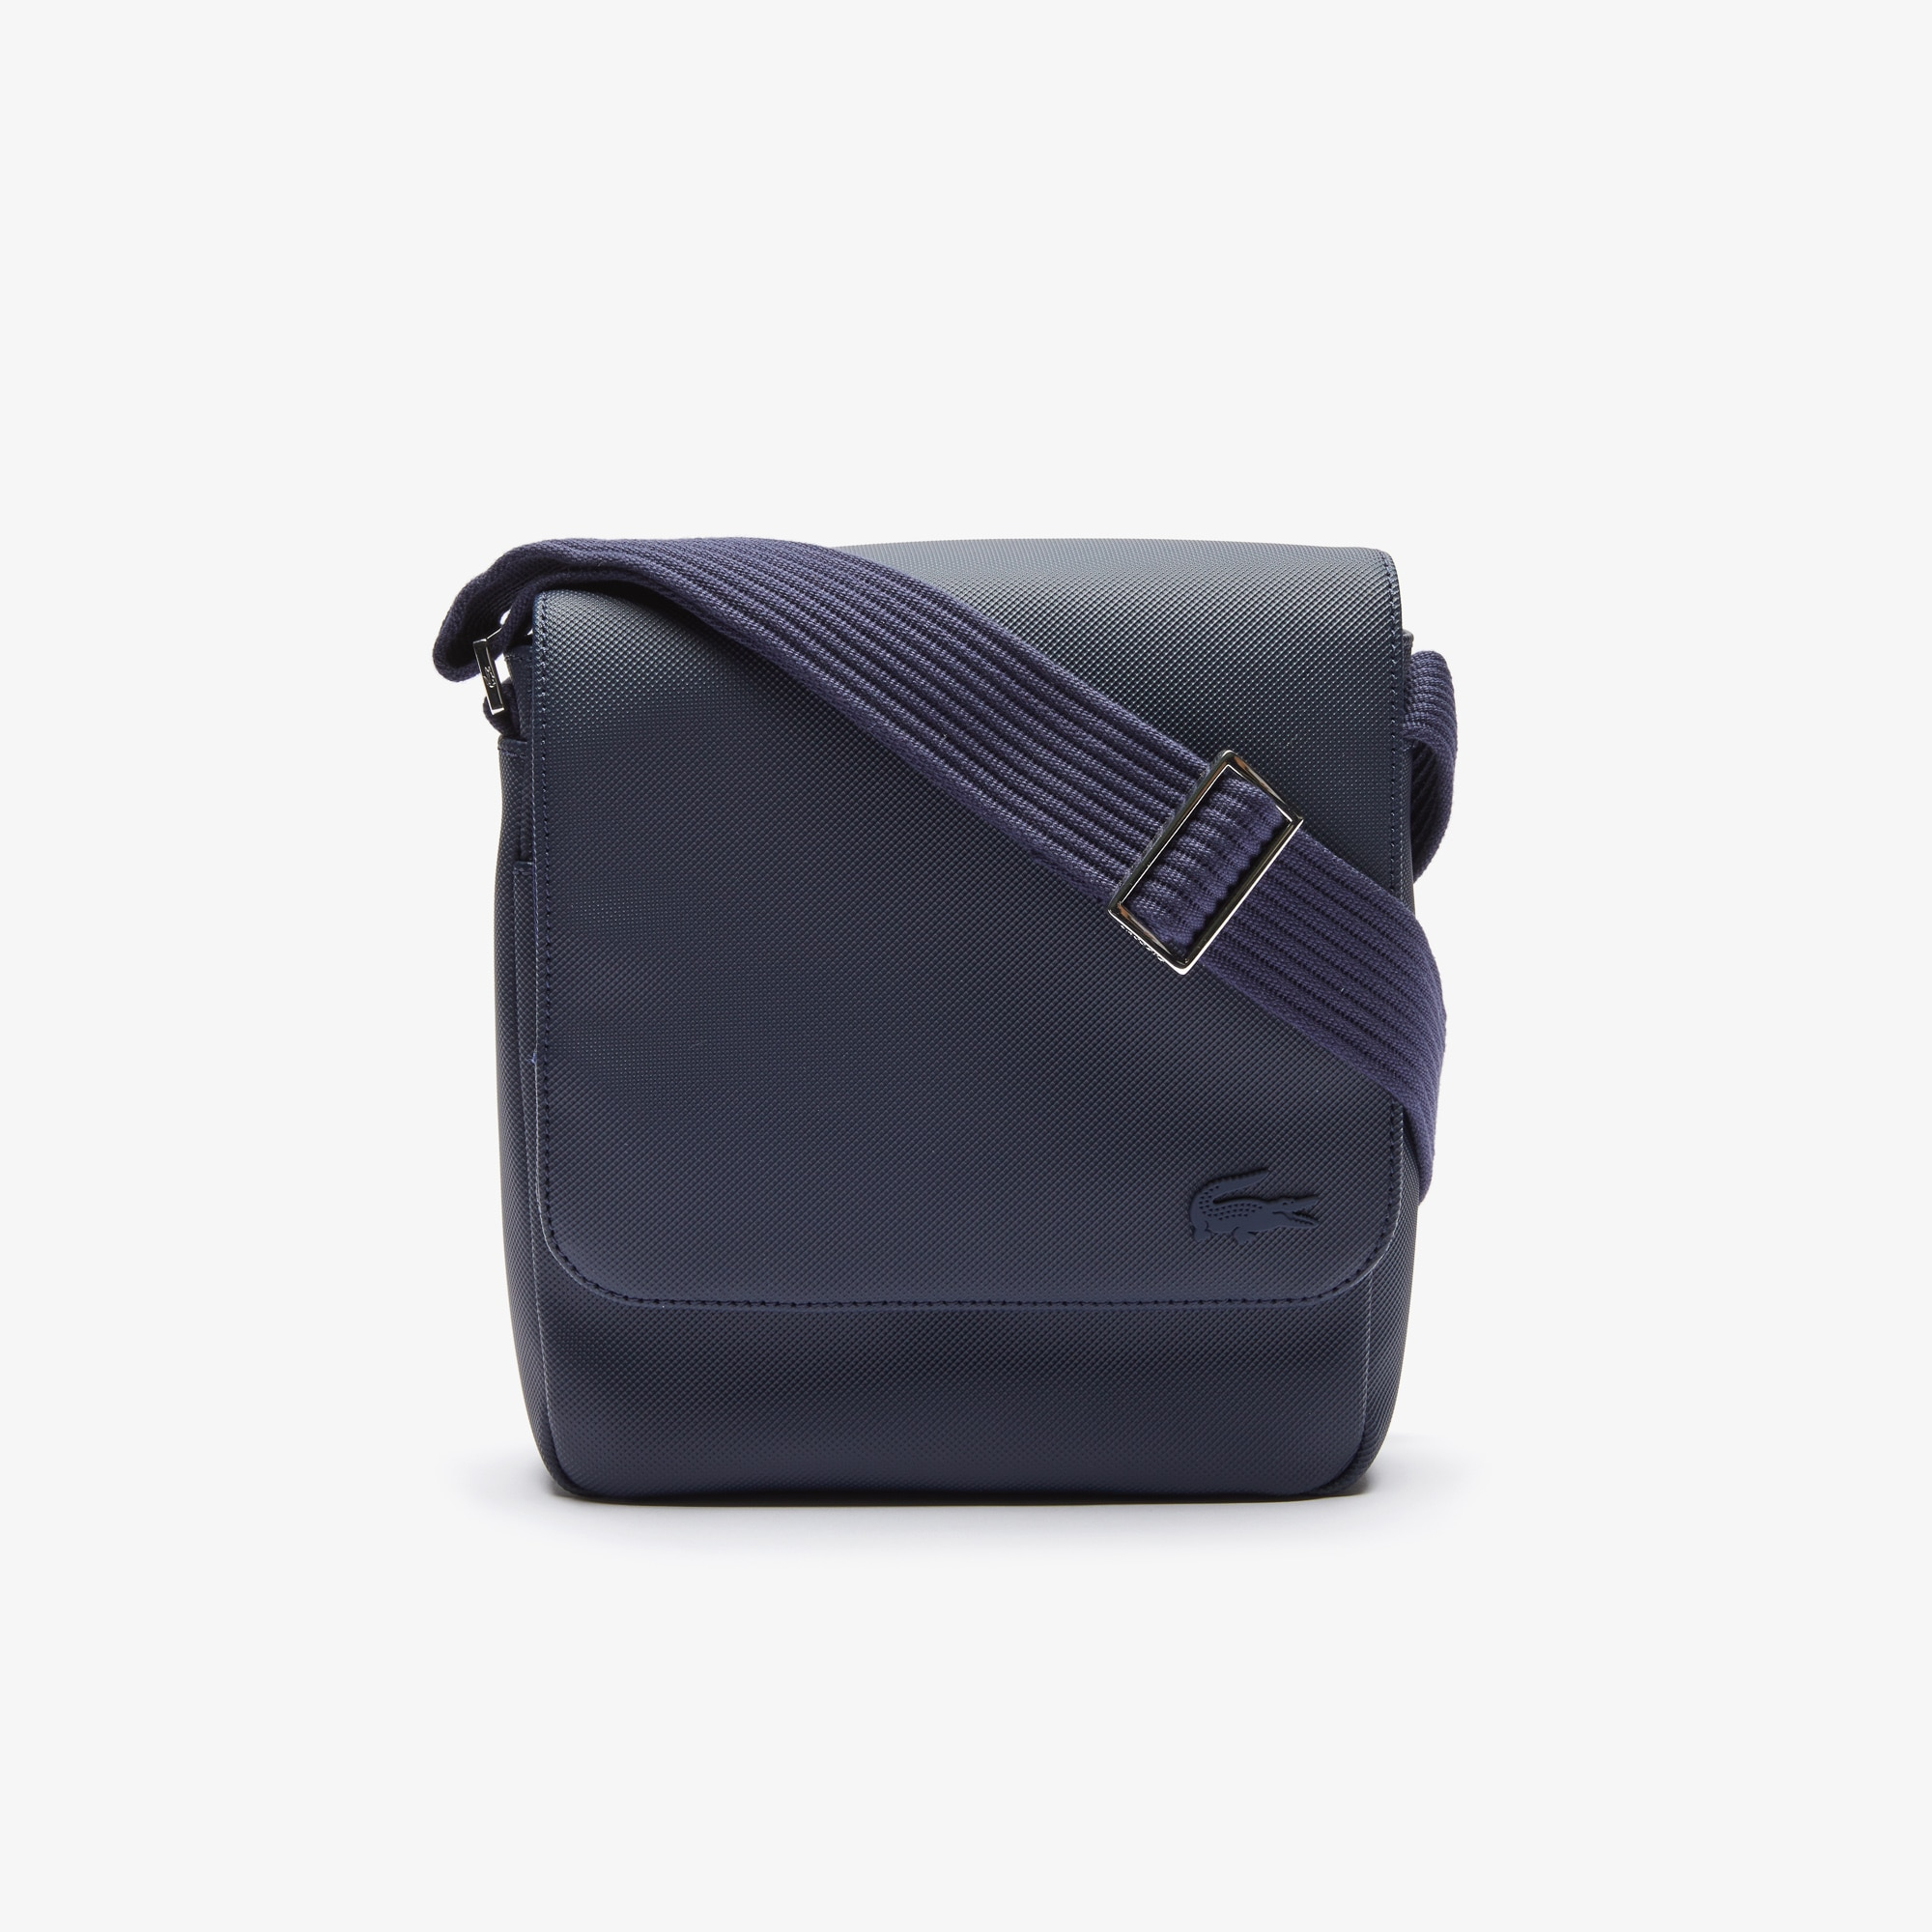 Sacs et Sacoches Homme | Maroquinerie Homme | LACOSTE